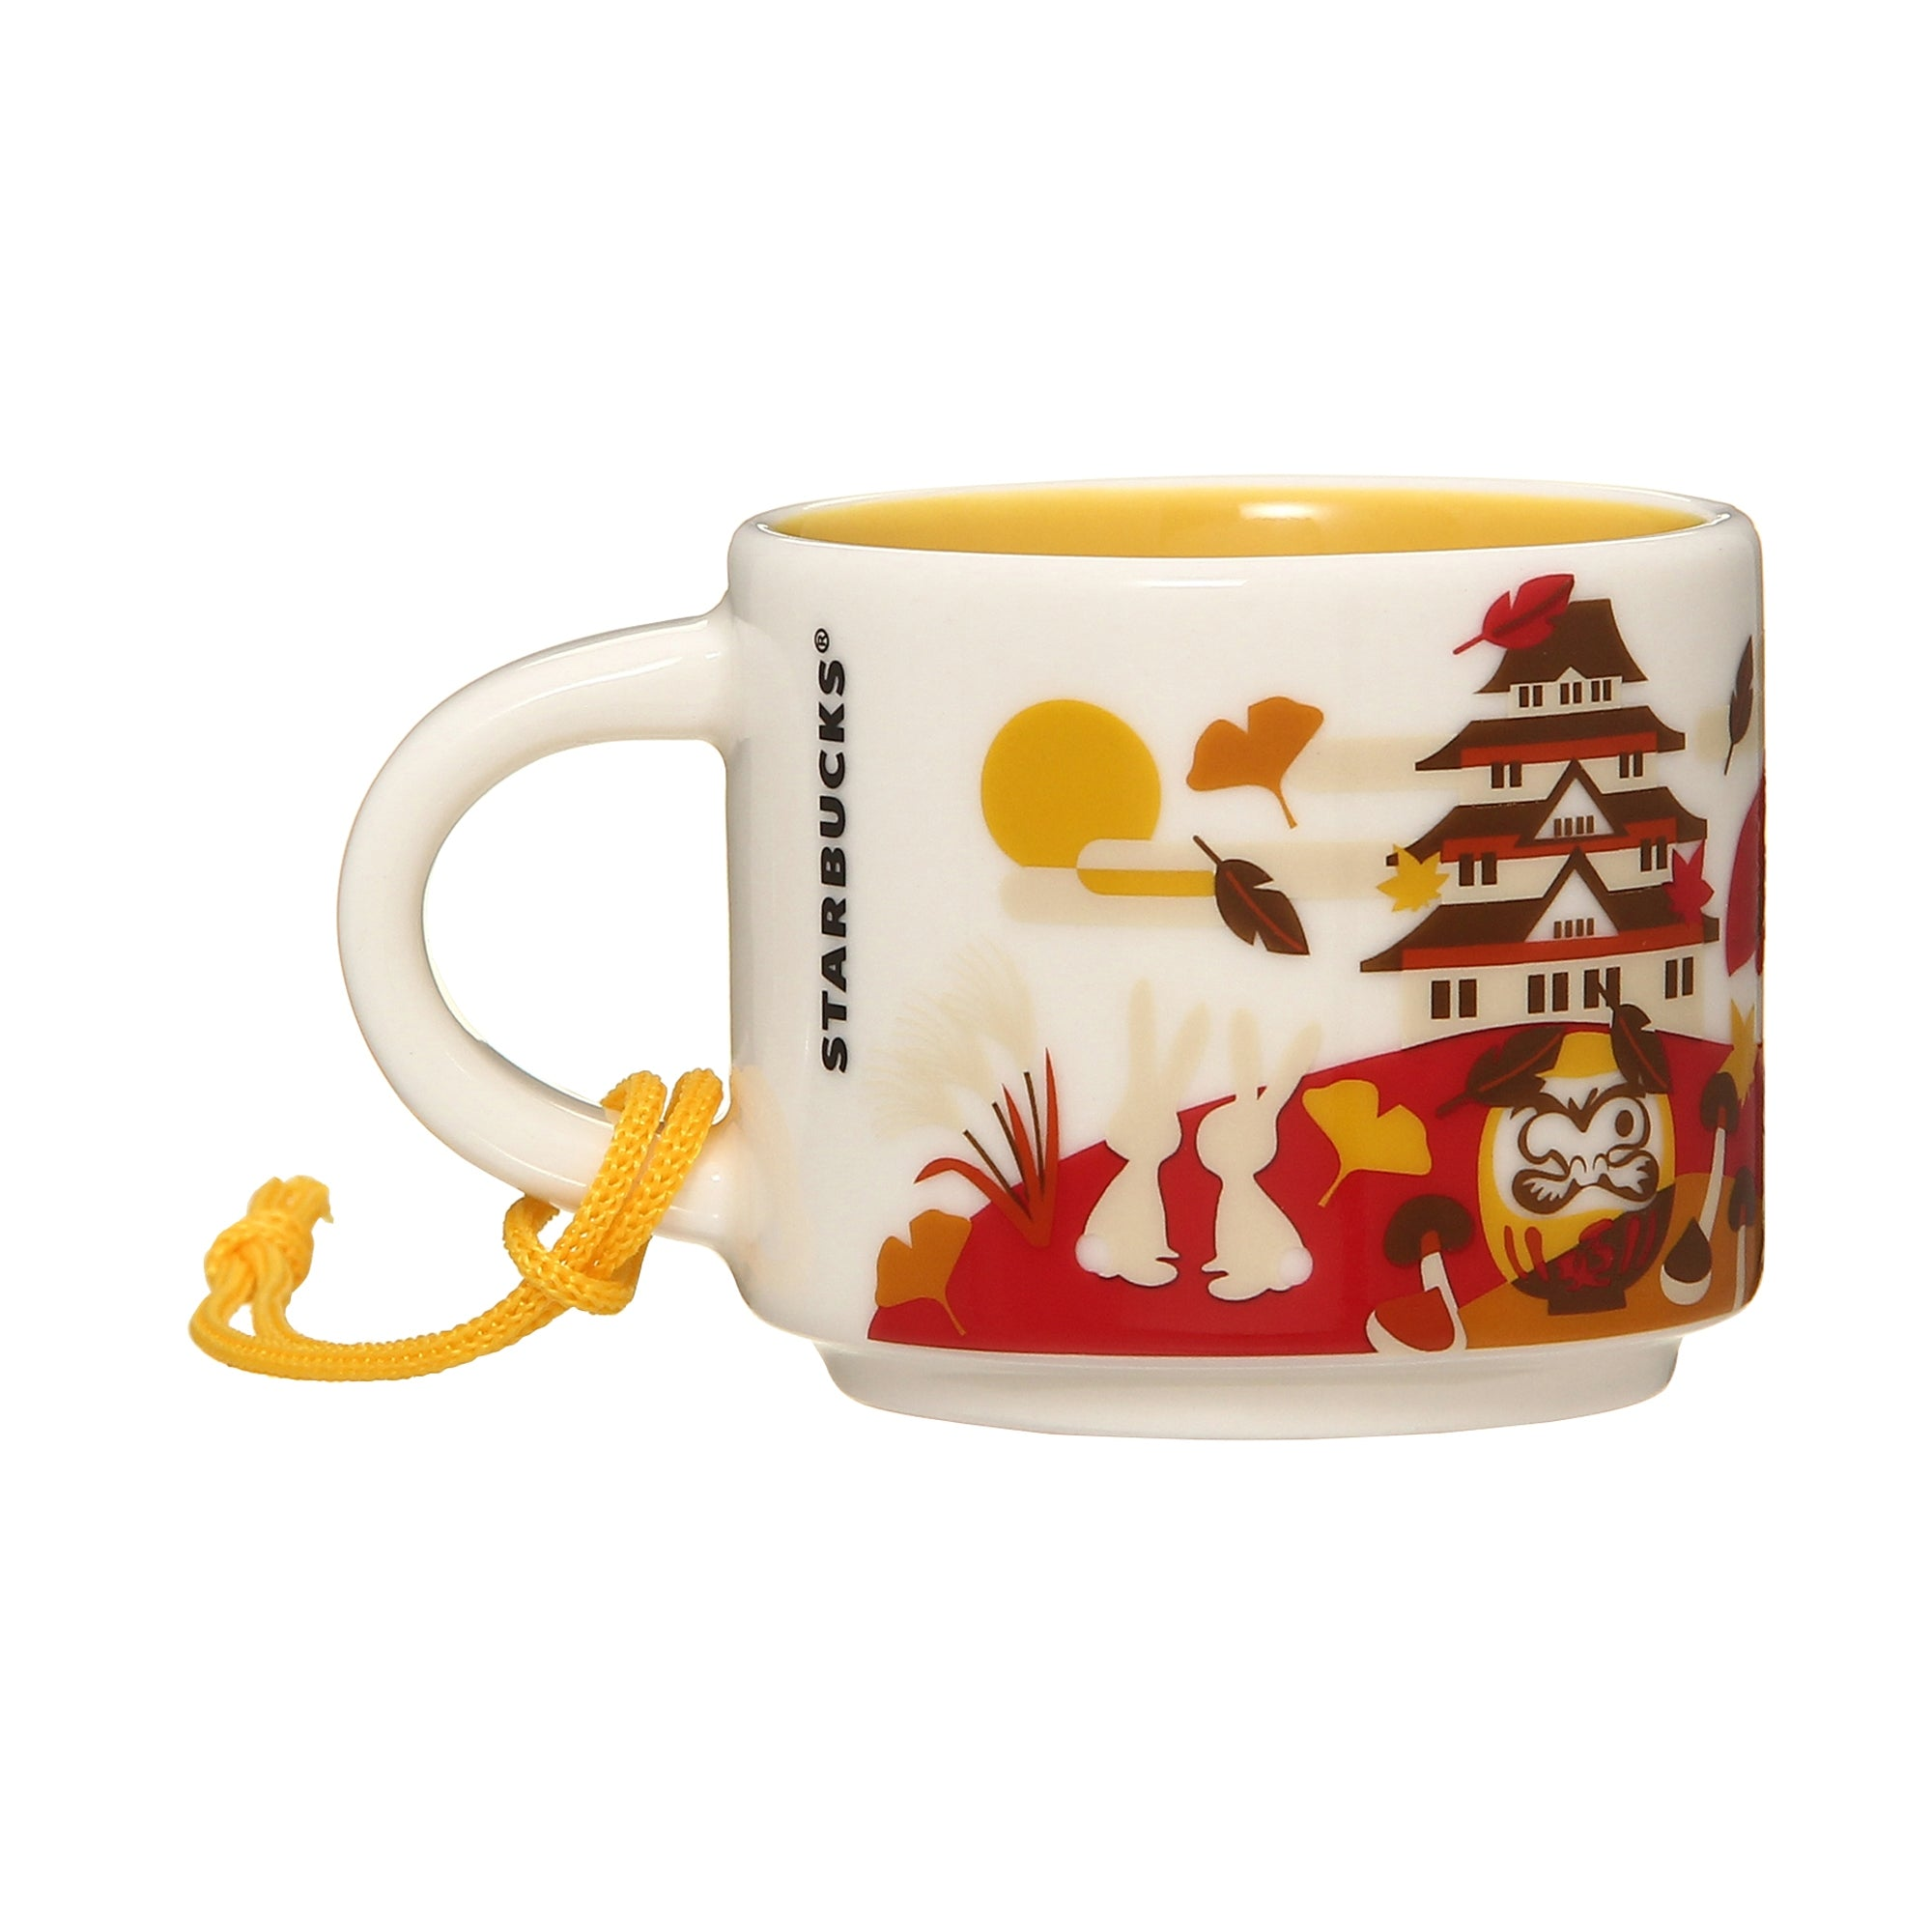 You Are Here Collection Mug Cup Japan Autumn 59ml Starbucks 2019